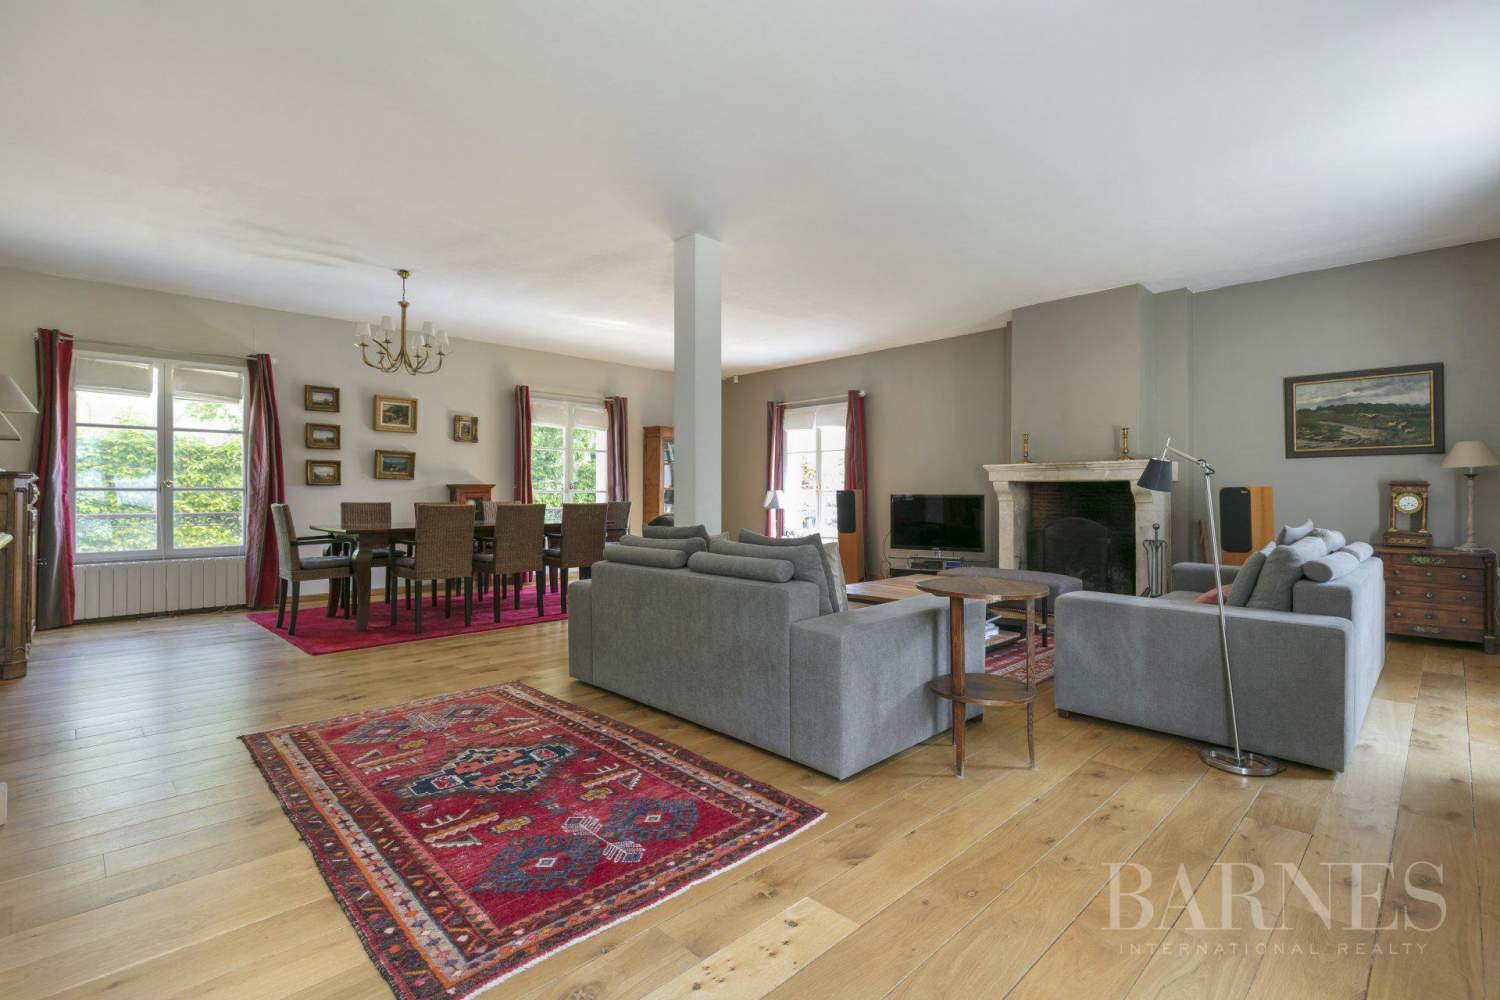 CENTRE OF NOISY-LE-ROI, 330m² (3,552 sq ft) FAMILY HOUSE, 5 BEDROOMS, 500m² (5,382 sq ft), SEPARATE STUDIO picture 1